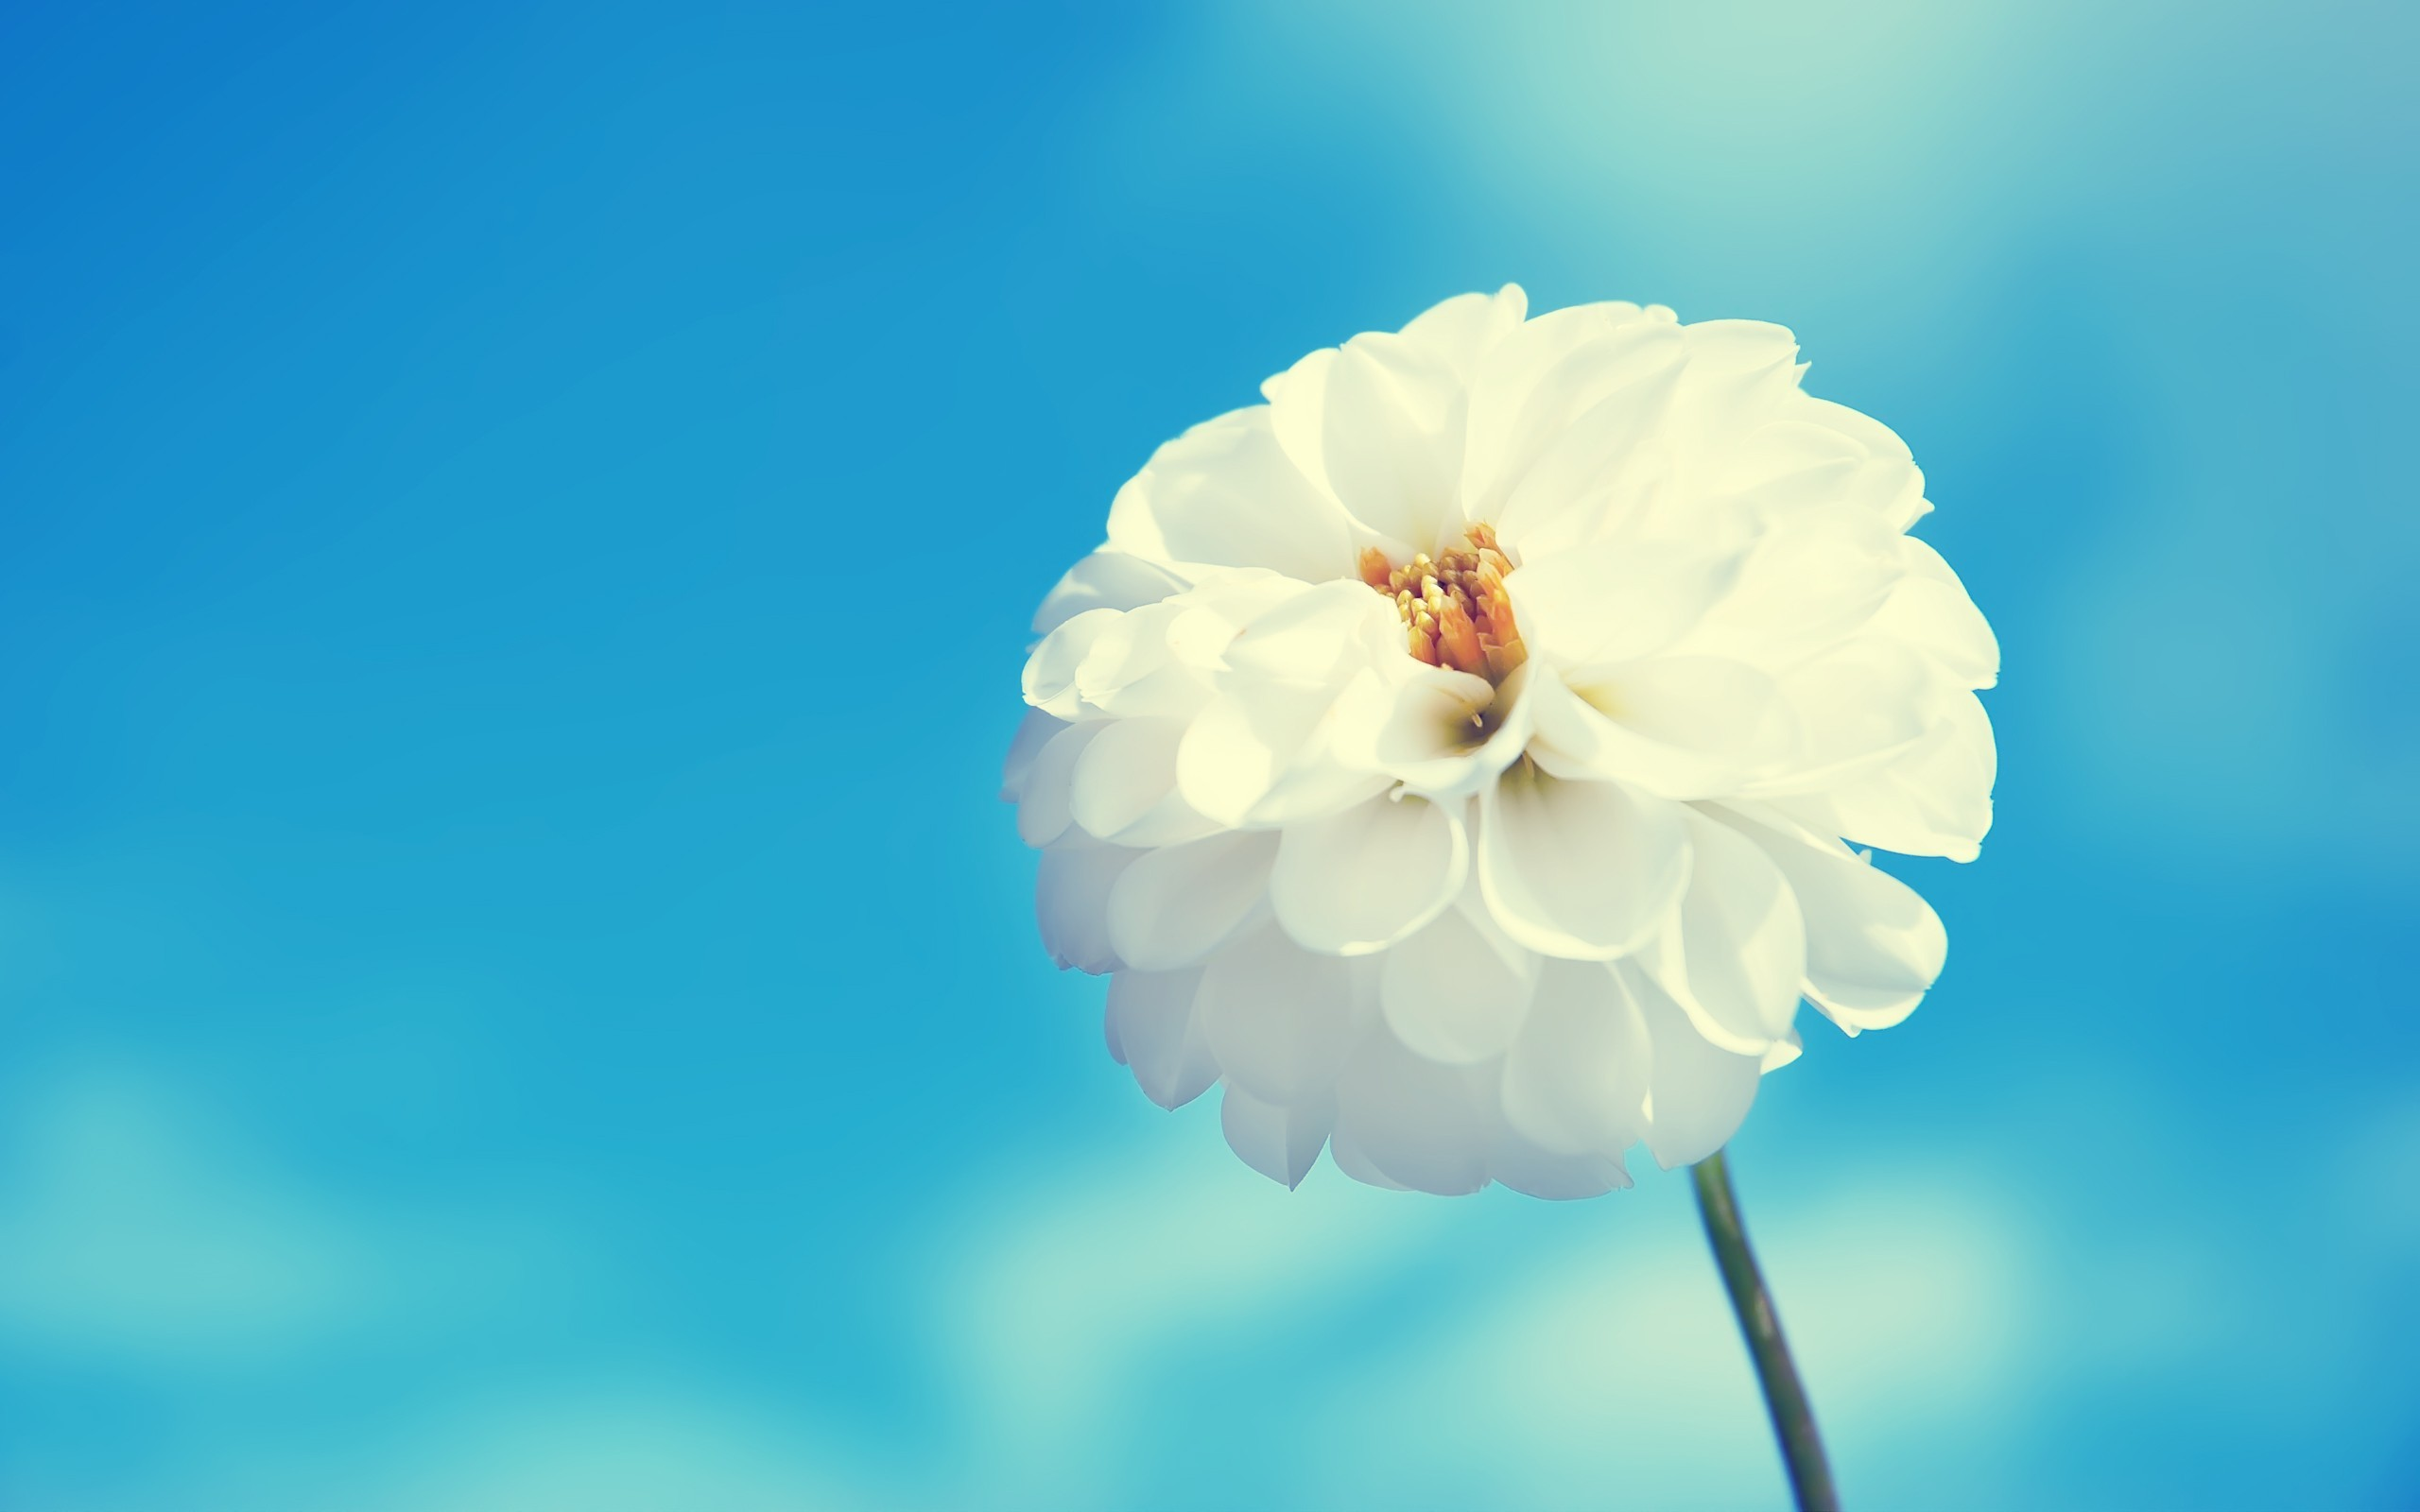 2560x1600 White Flower And Blue Sky 2560 x 1600 340x220